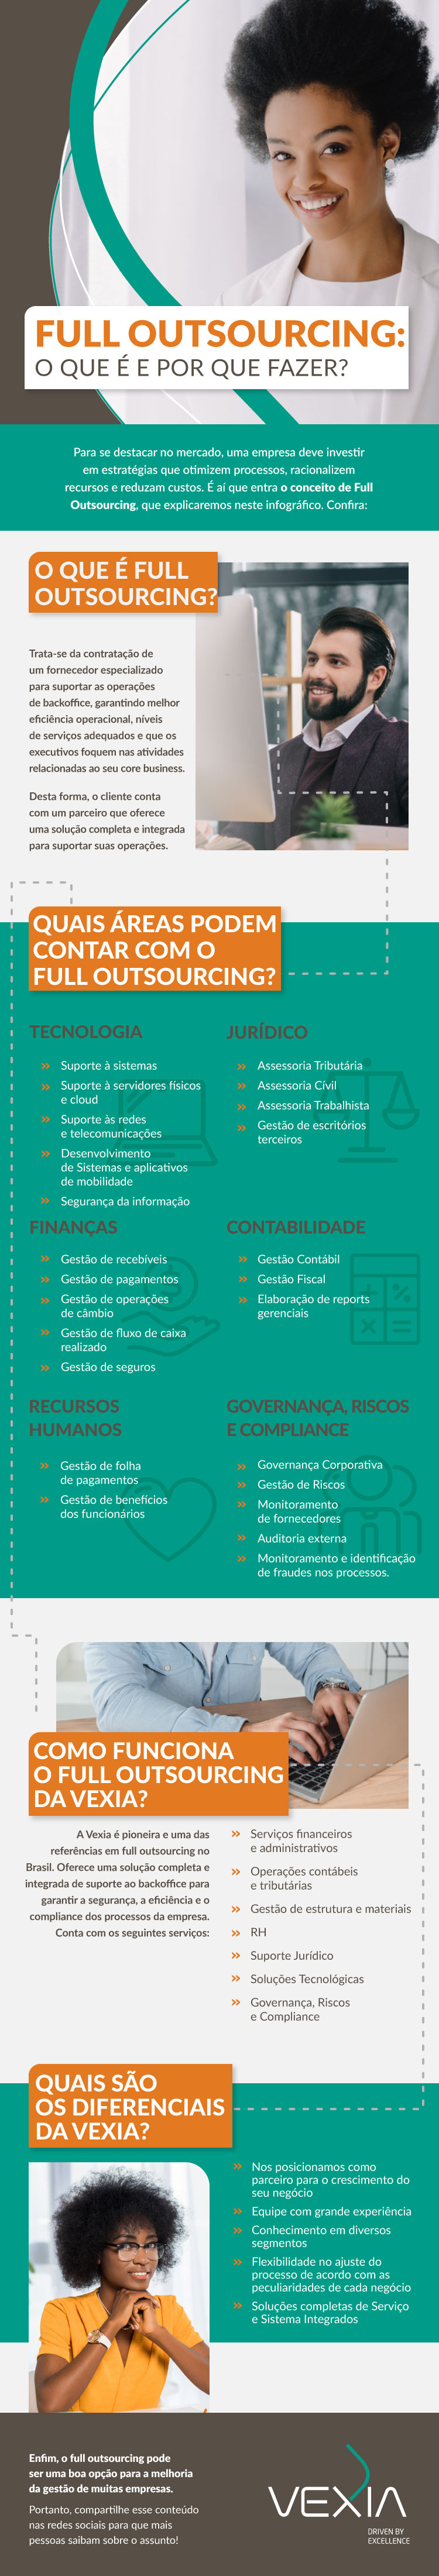 infografico full outsourcing